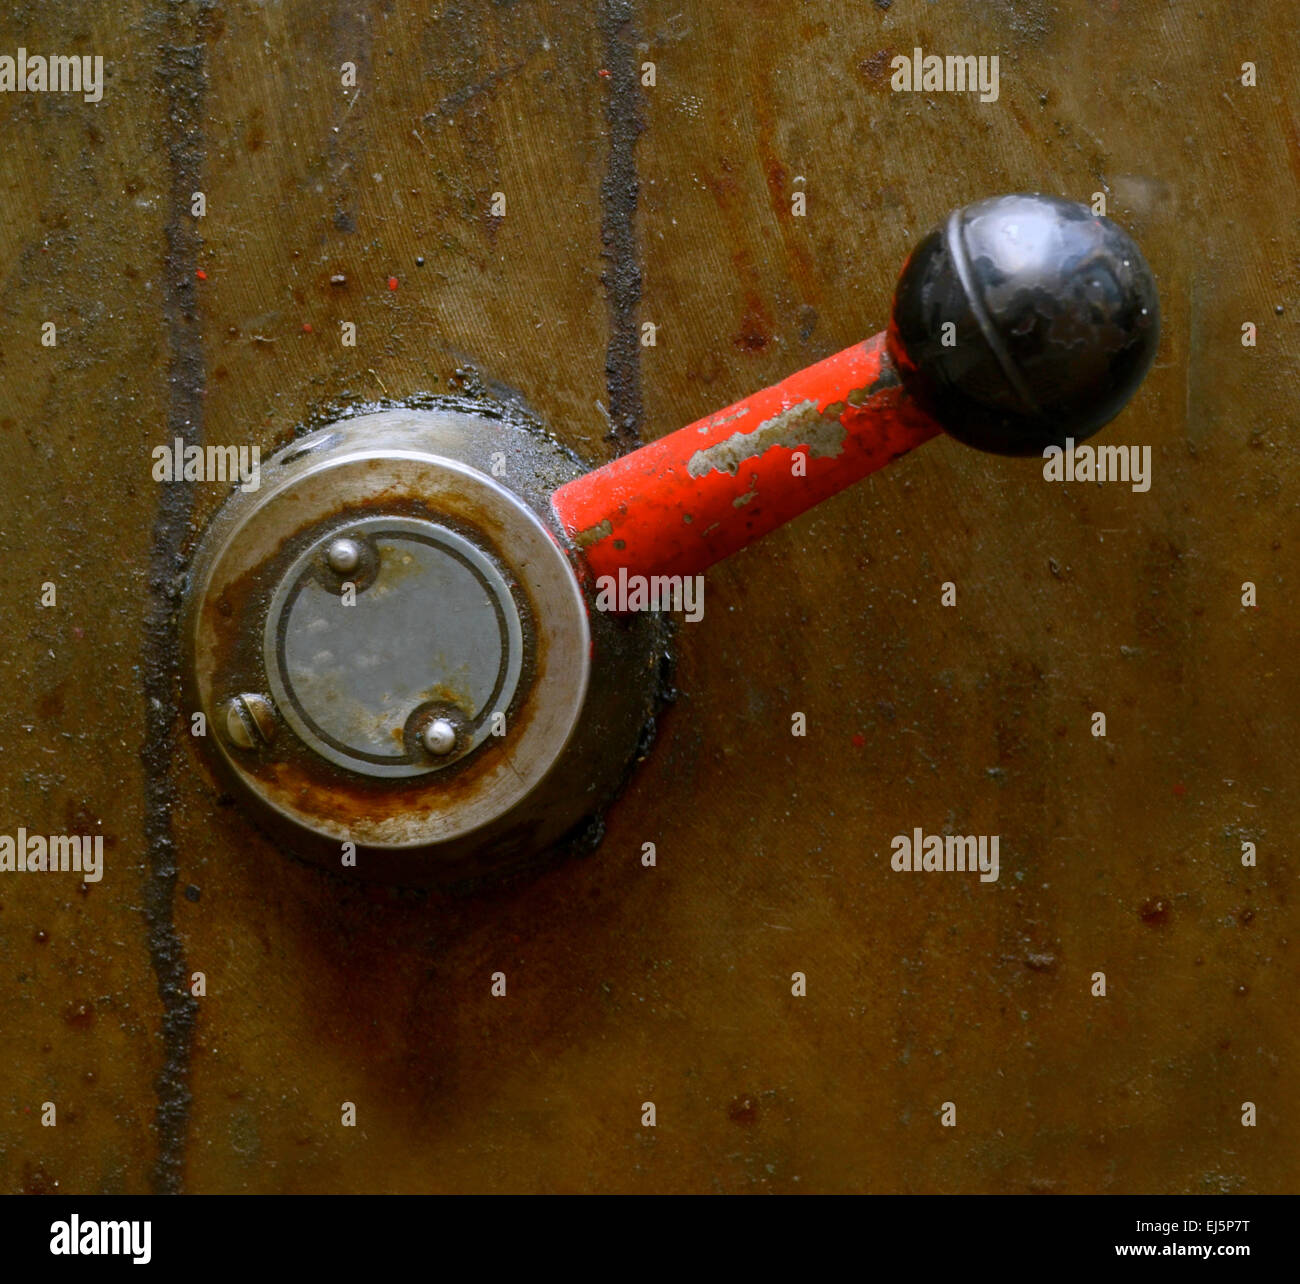 A Grungy Industrial Lever On Some Heavy Machinery - Stock Image